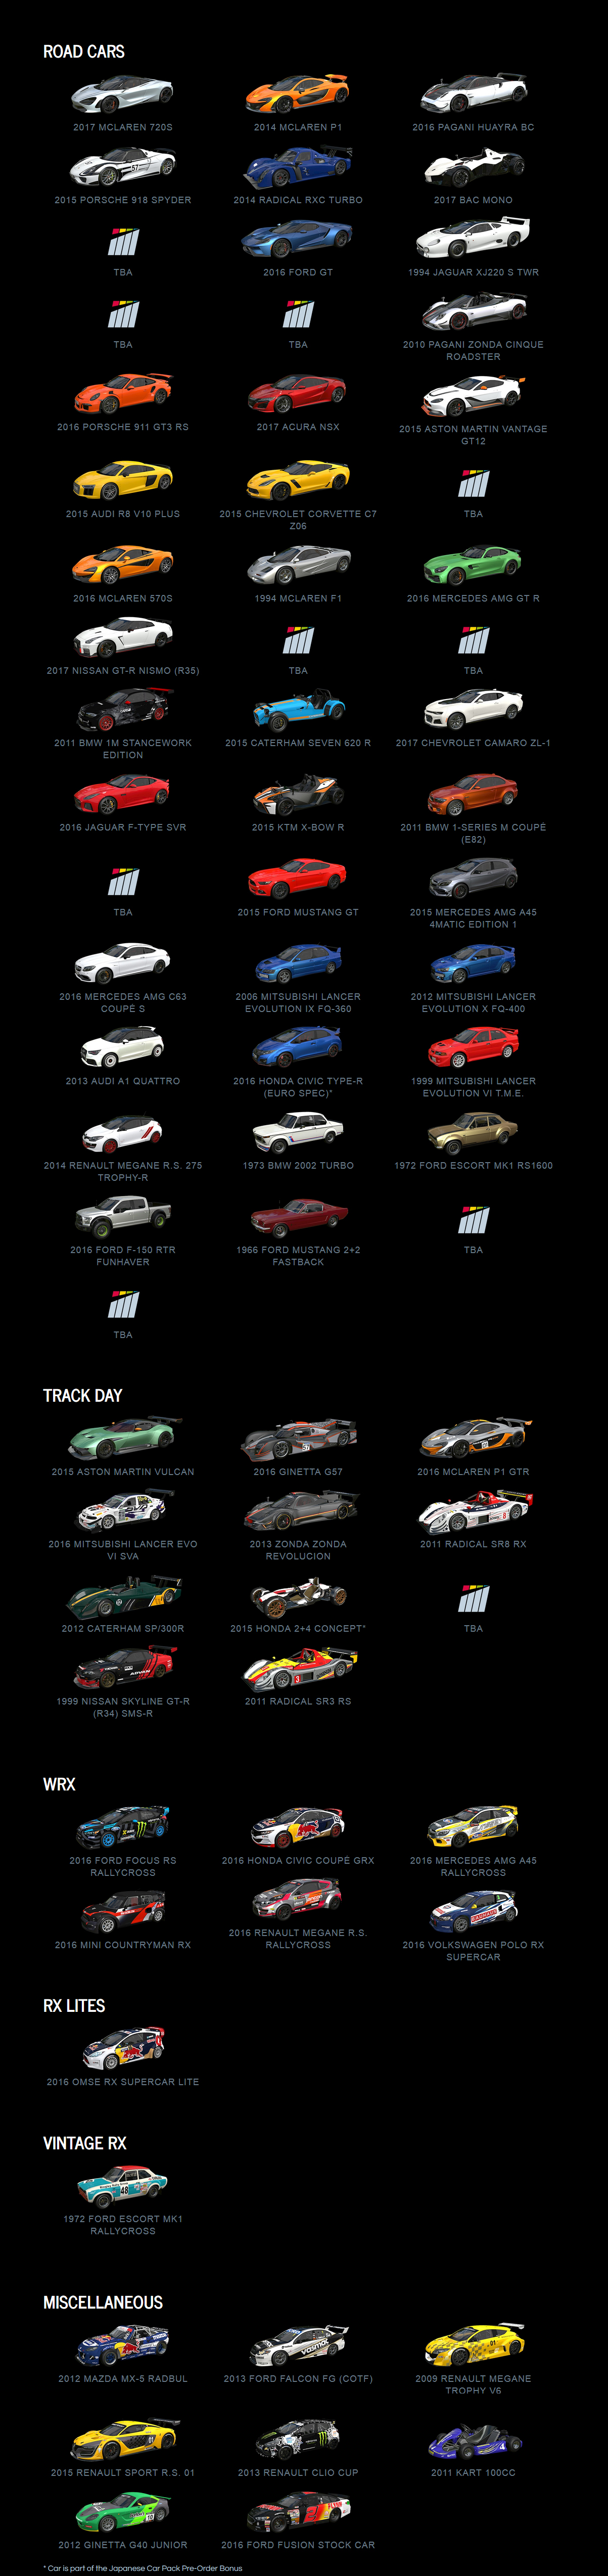 ProjectCARS2 Car List - Infographic - road cars